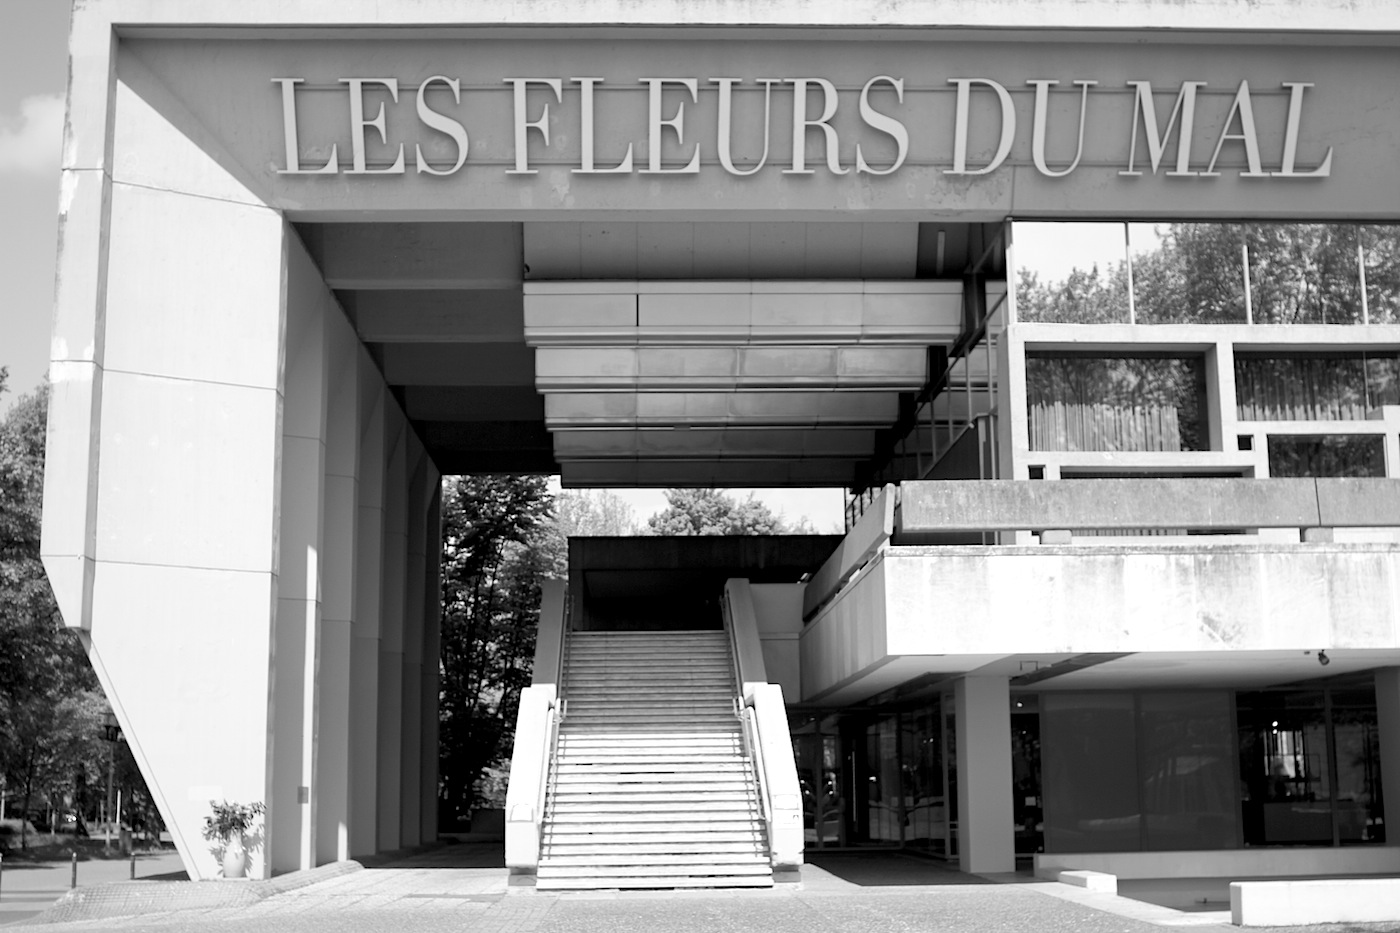 "Les Fleurs Du Mal. ""The Flowers of Evil"" is written on the edge of the façade of the town hall, the museum of sculptures, opened in 1982, and the free staircase to the civil registry office – an installation by the light artist, Mischa Kuball, combining the title of the poem cycle by Baudelaire with the word play Flowers for Marl."